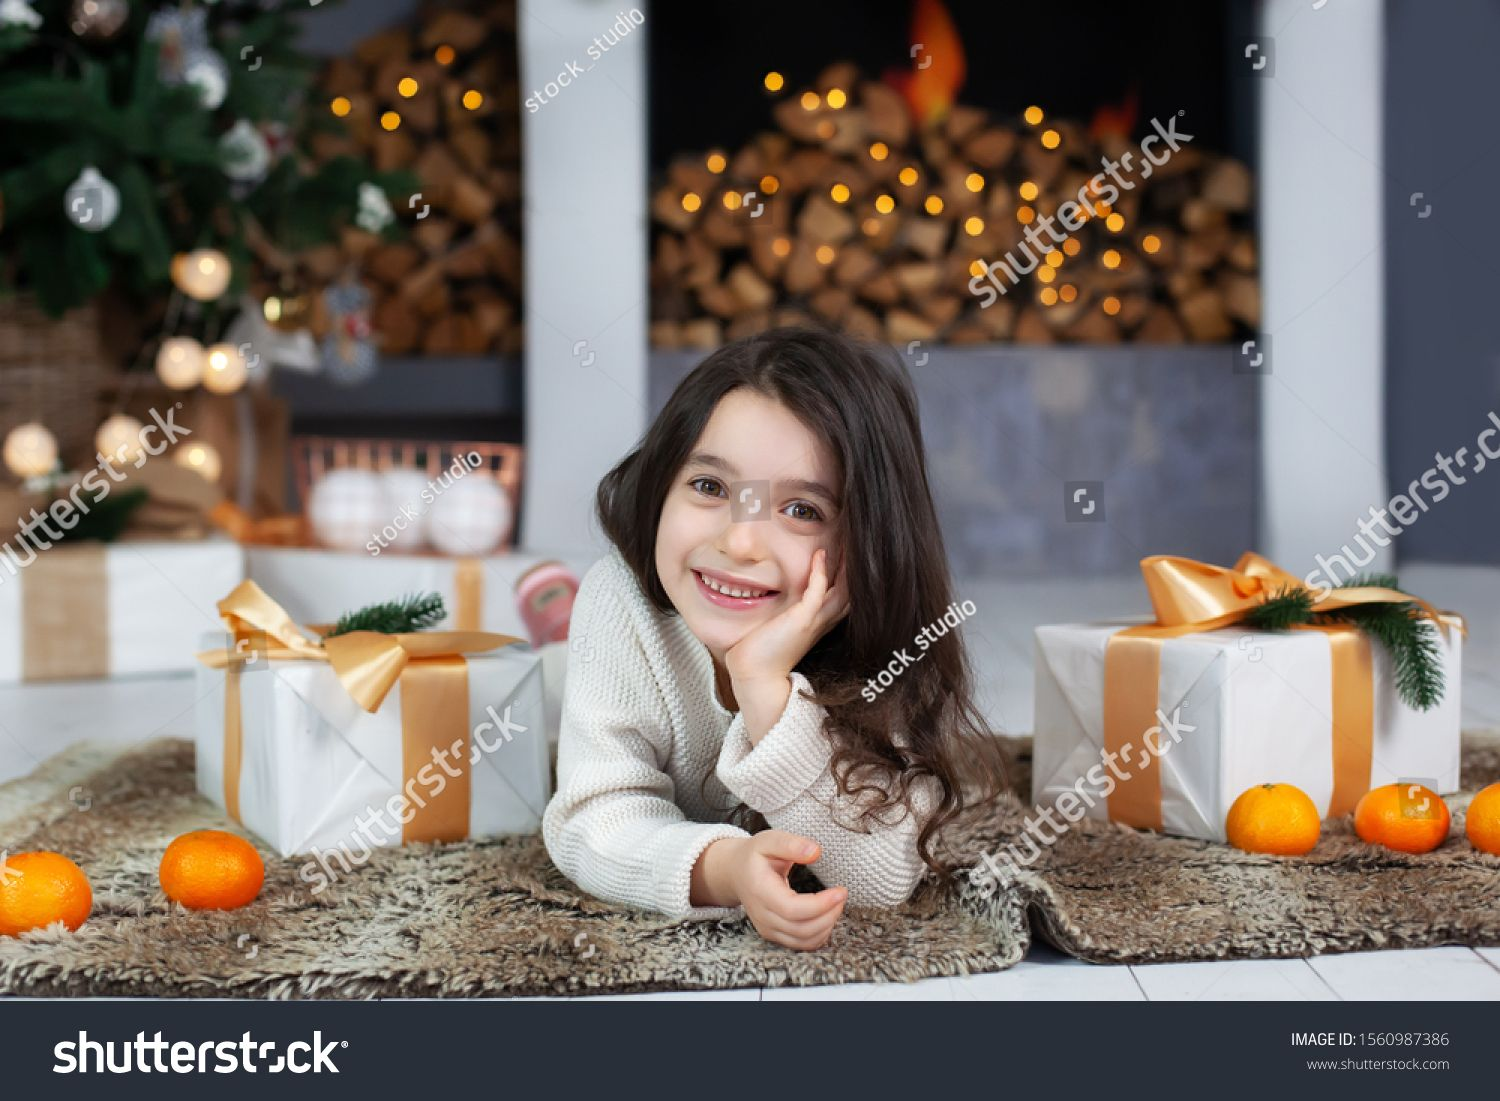 New Year. Smiling girl with gifts near Christmas tree and